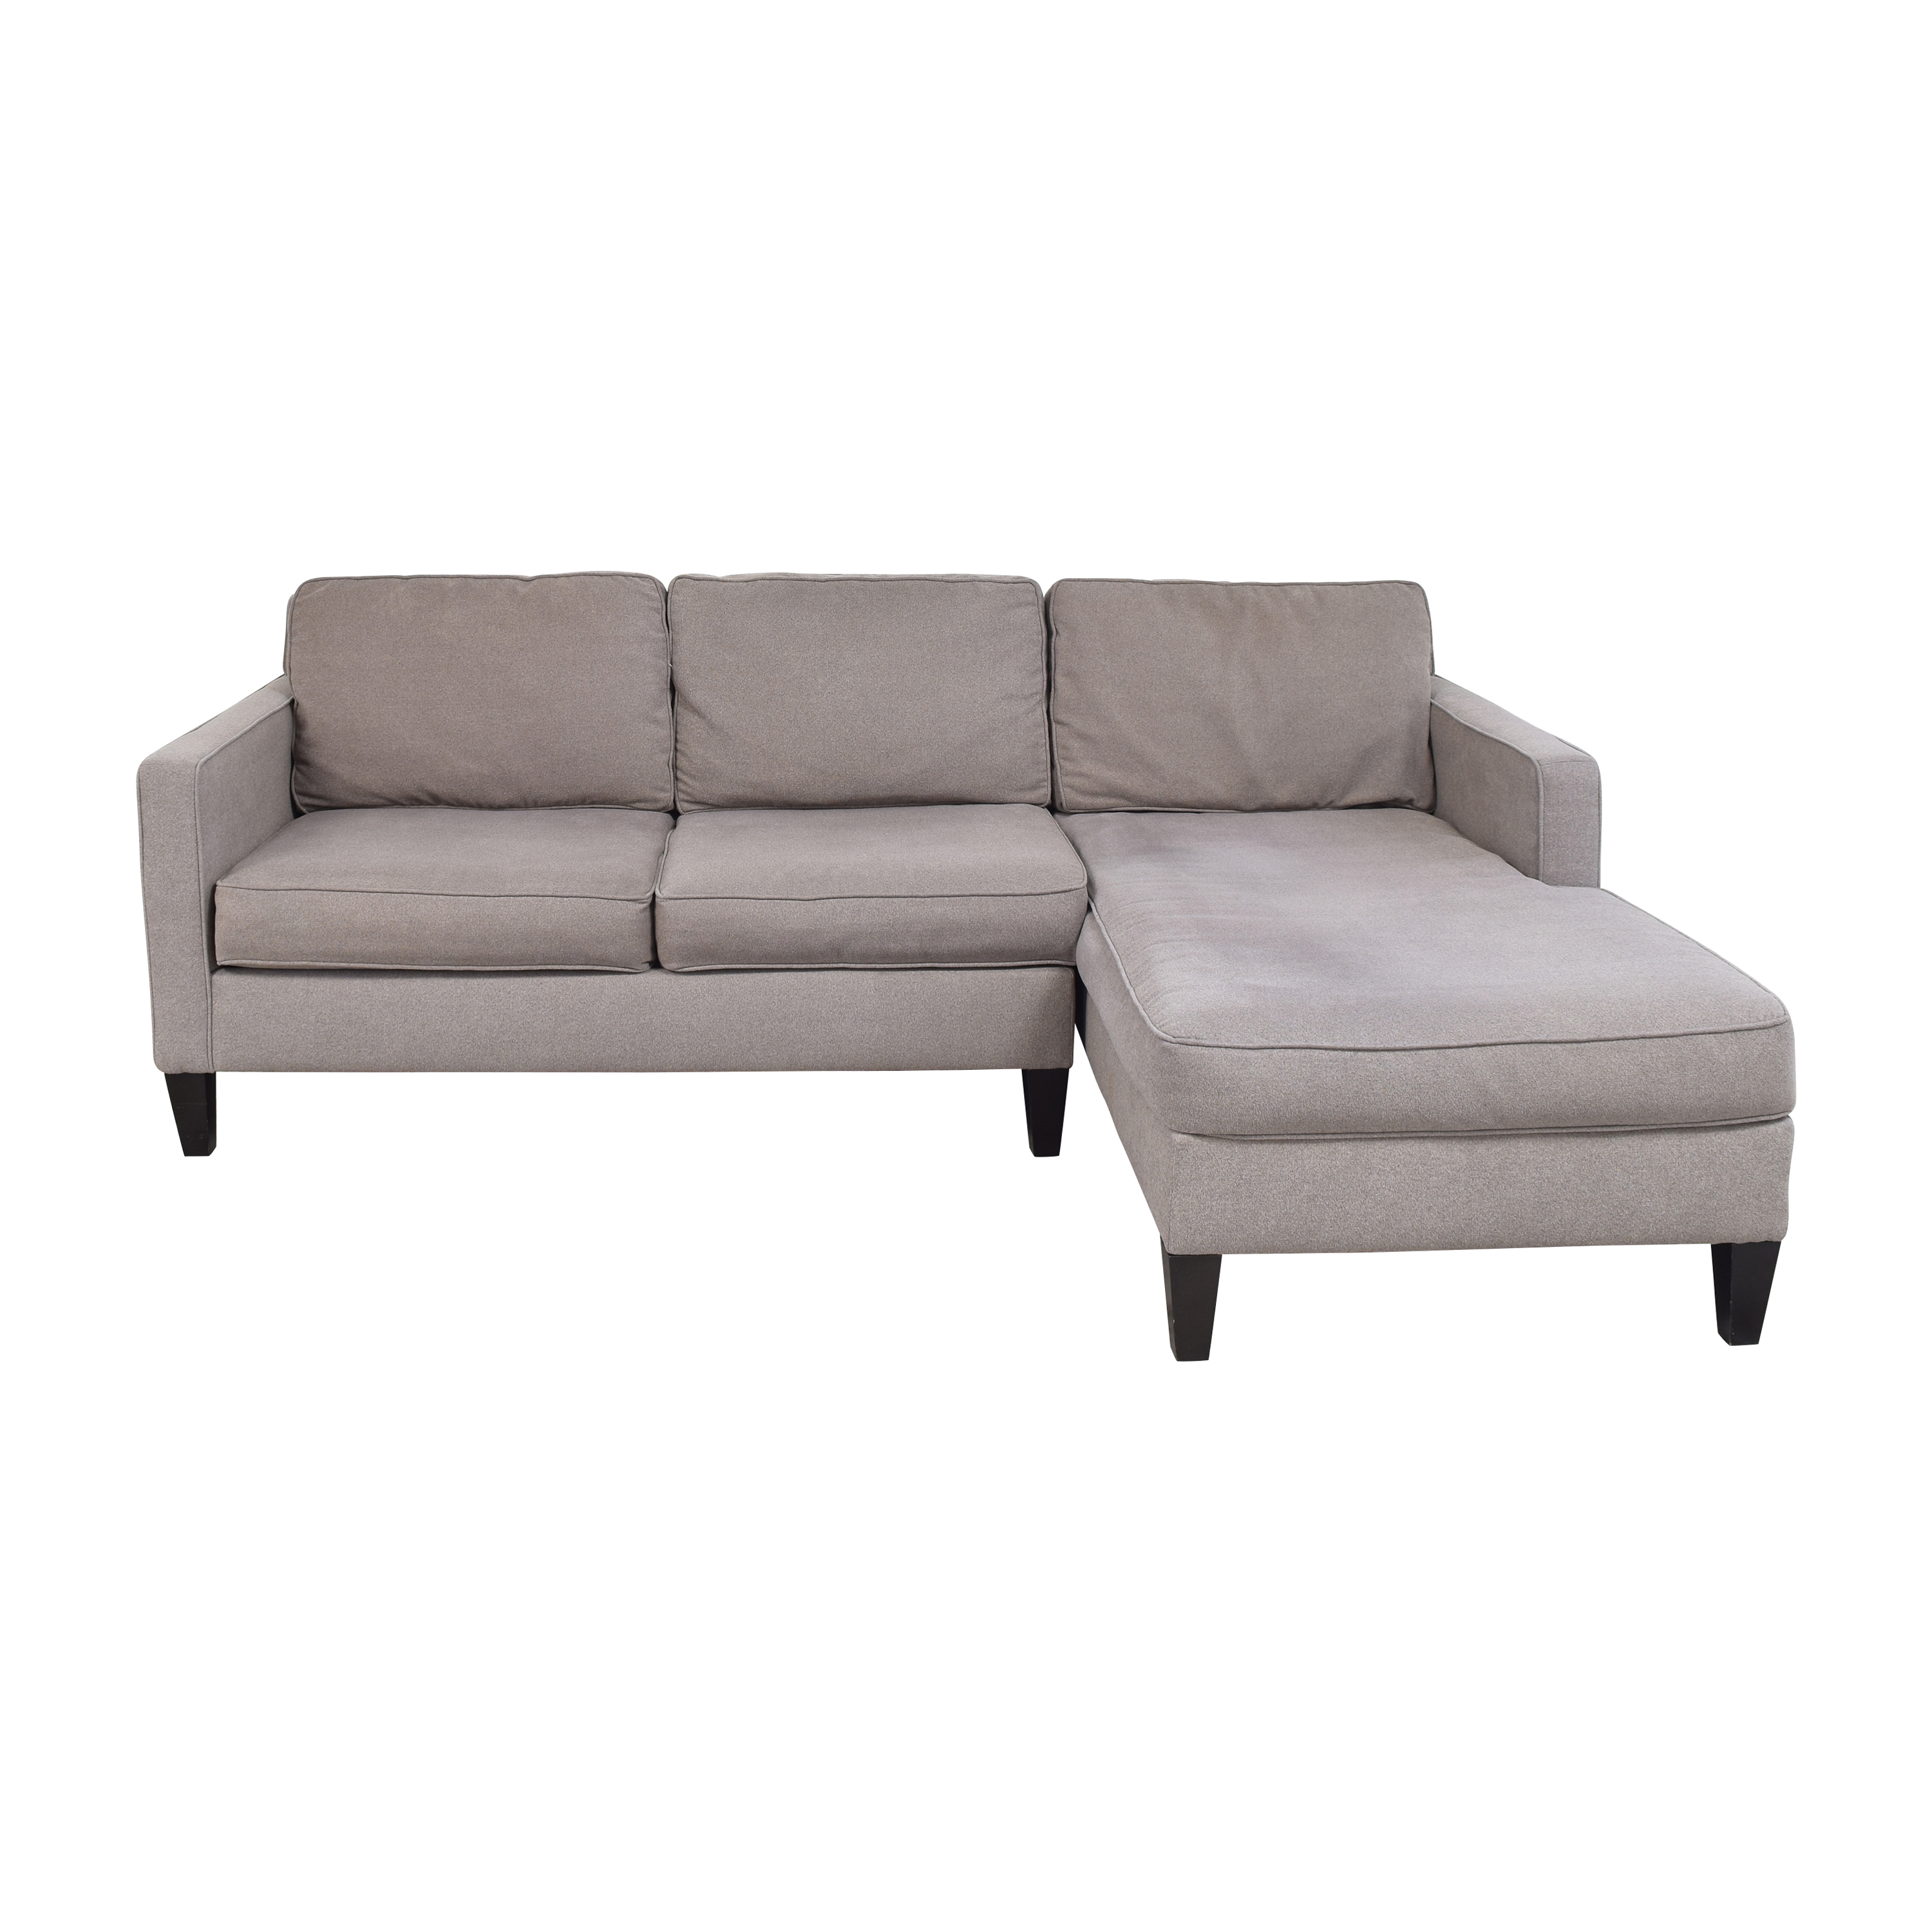 West Elm Heath Two Piece Chaise Sectional Sofa sale